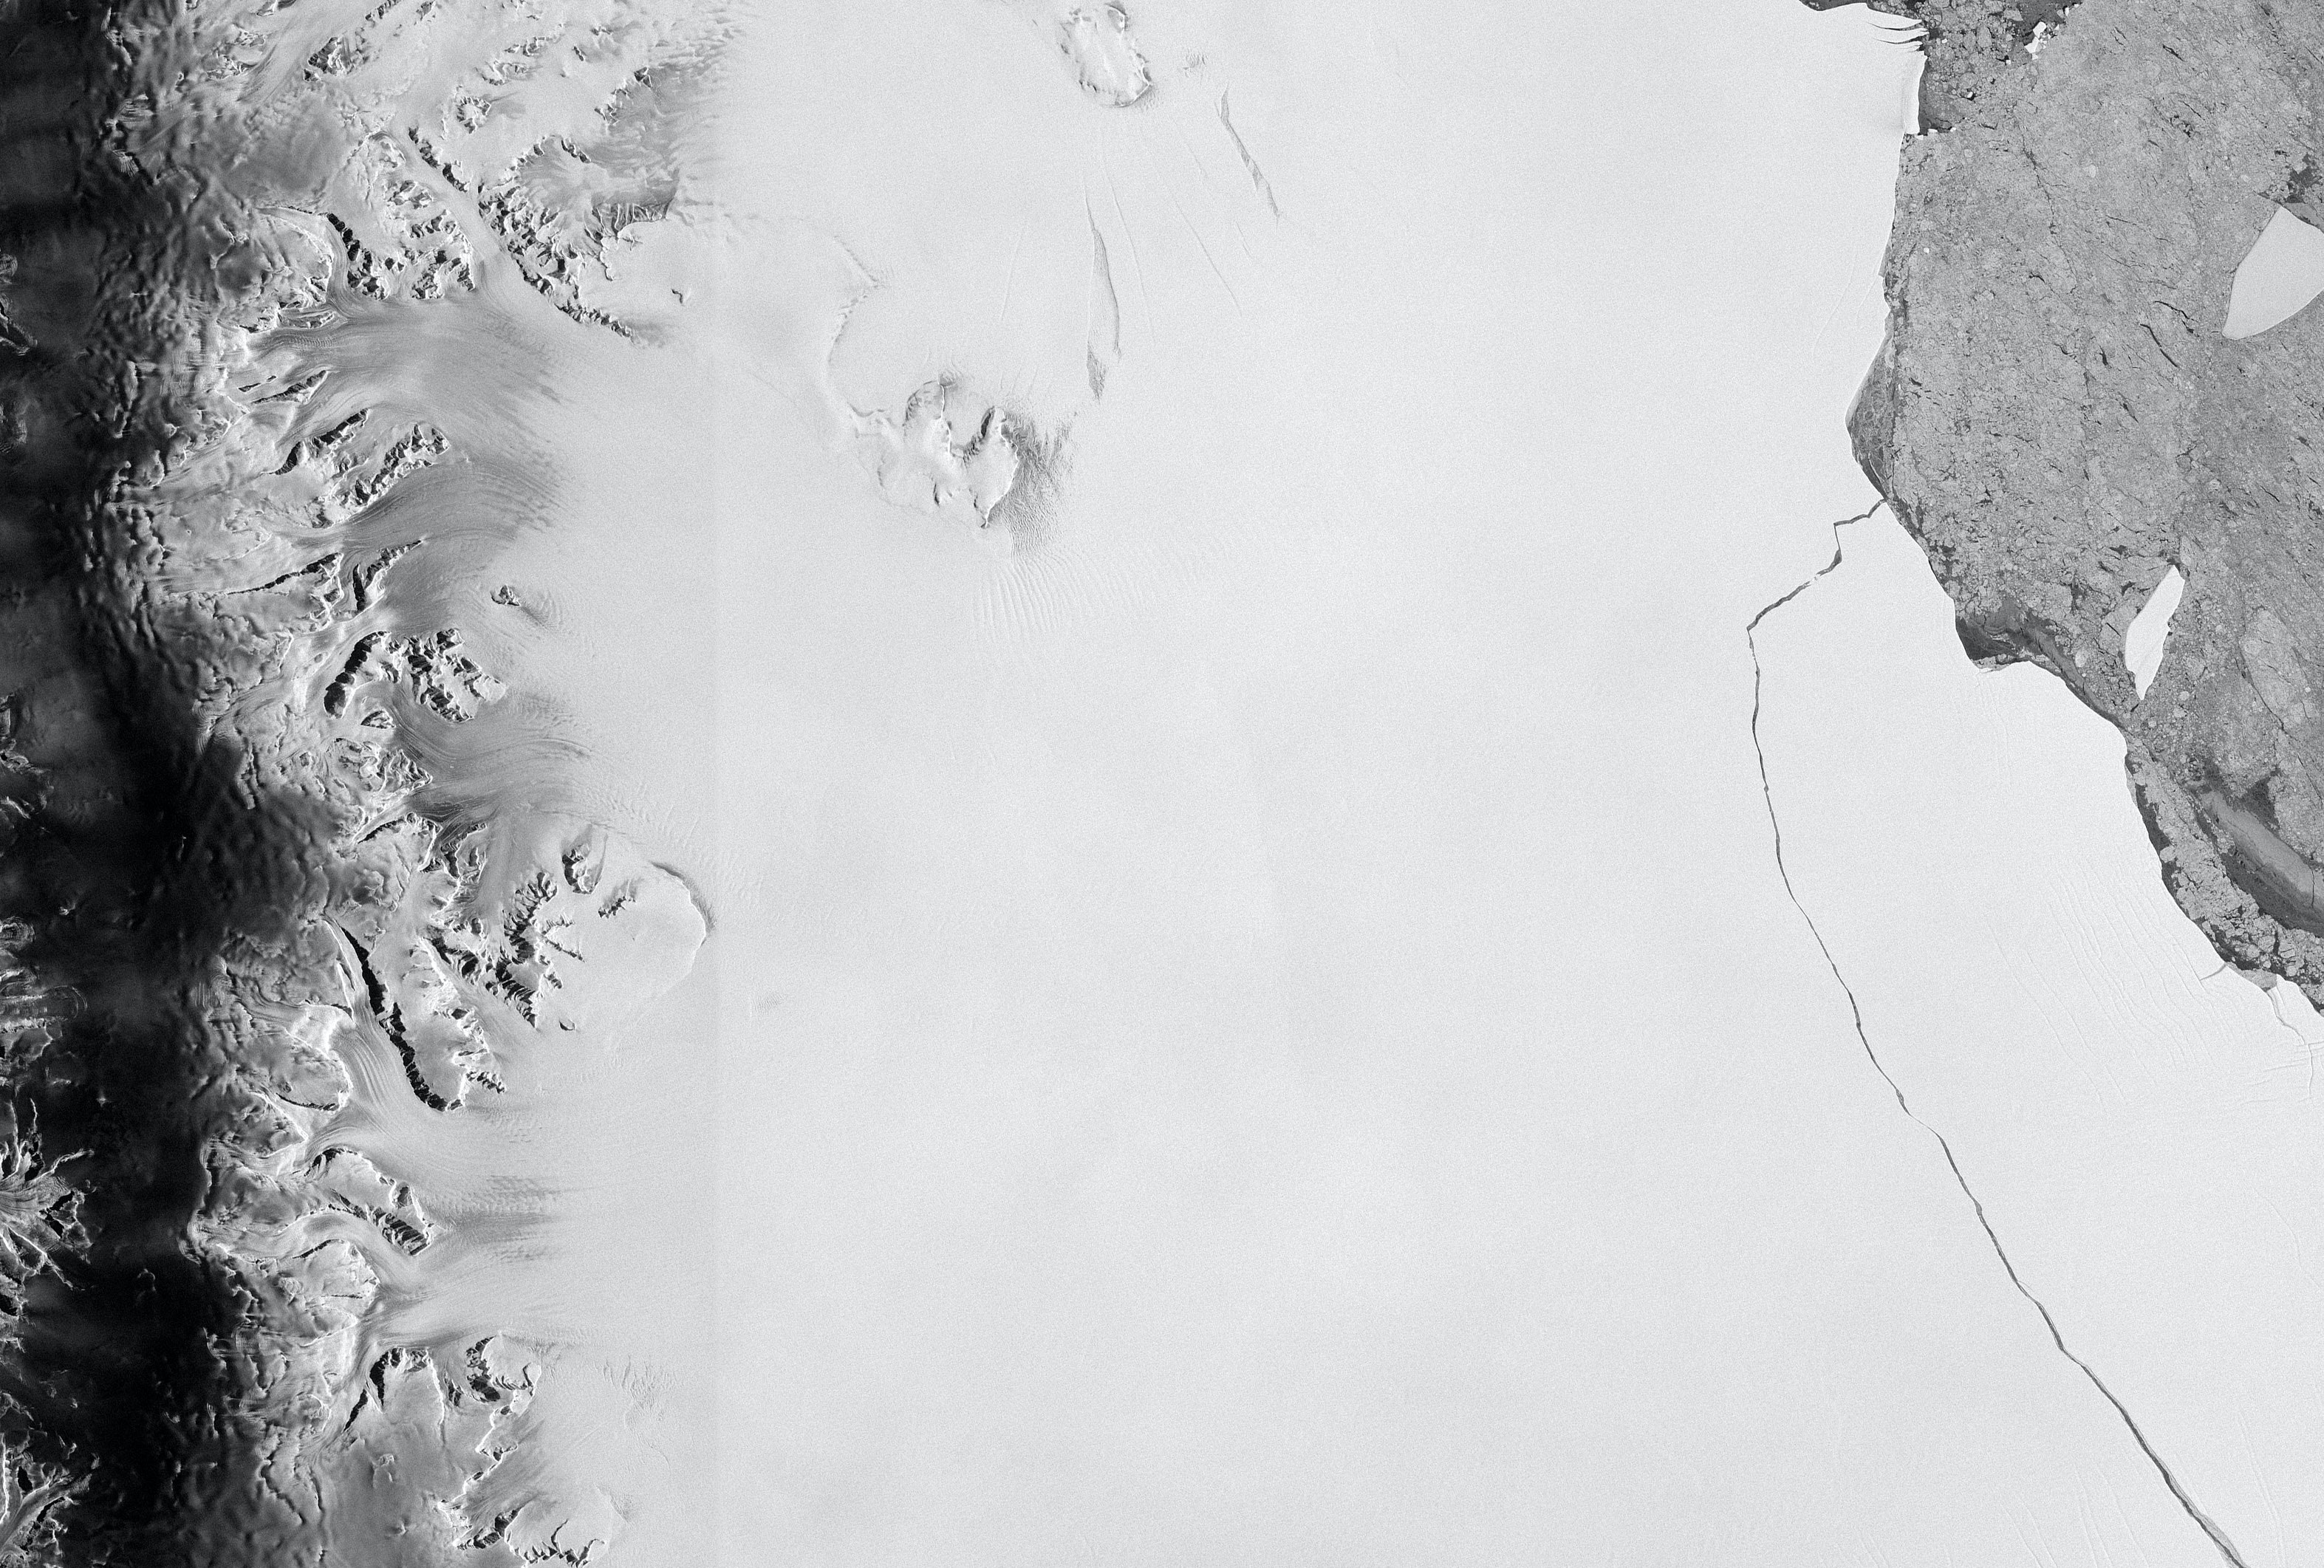 A Giant Mysterious Hole Has Emerged In Antarctica And Scientists Still Don't Know The Reason